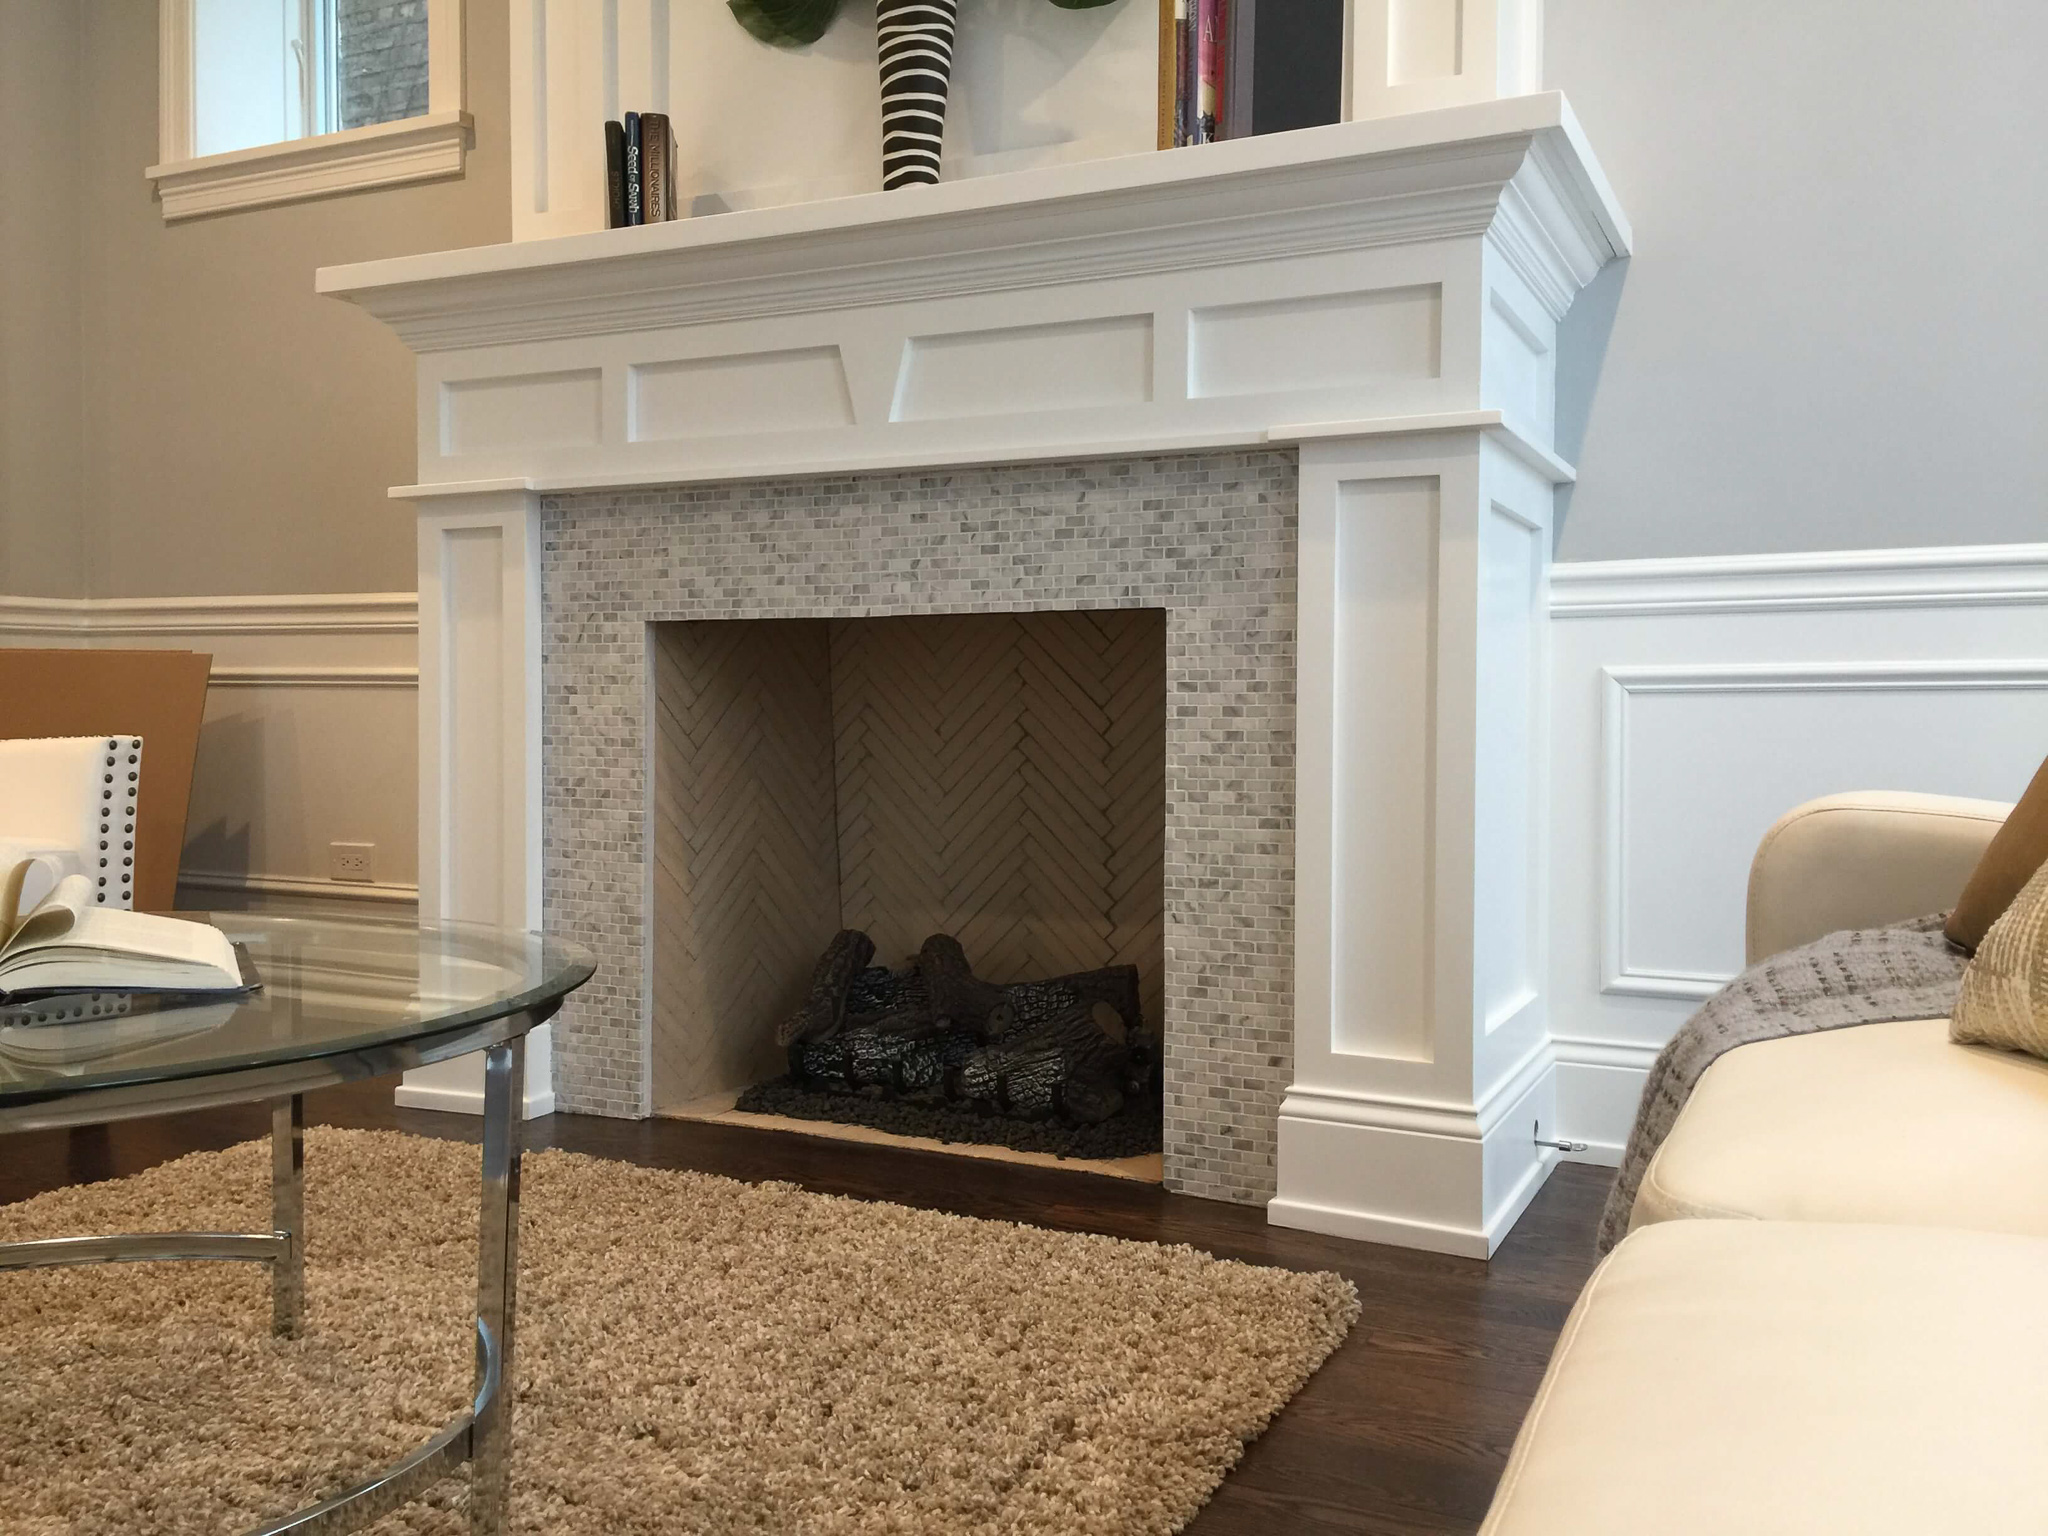 Fireplace (Mosaic Tile Surround, Brick Herringbone Firebox)